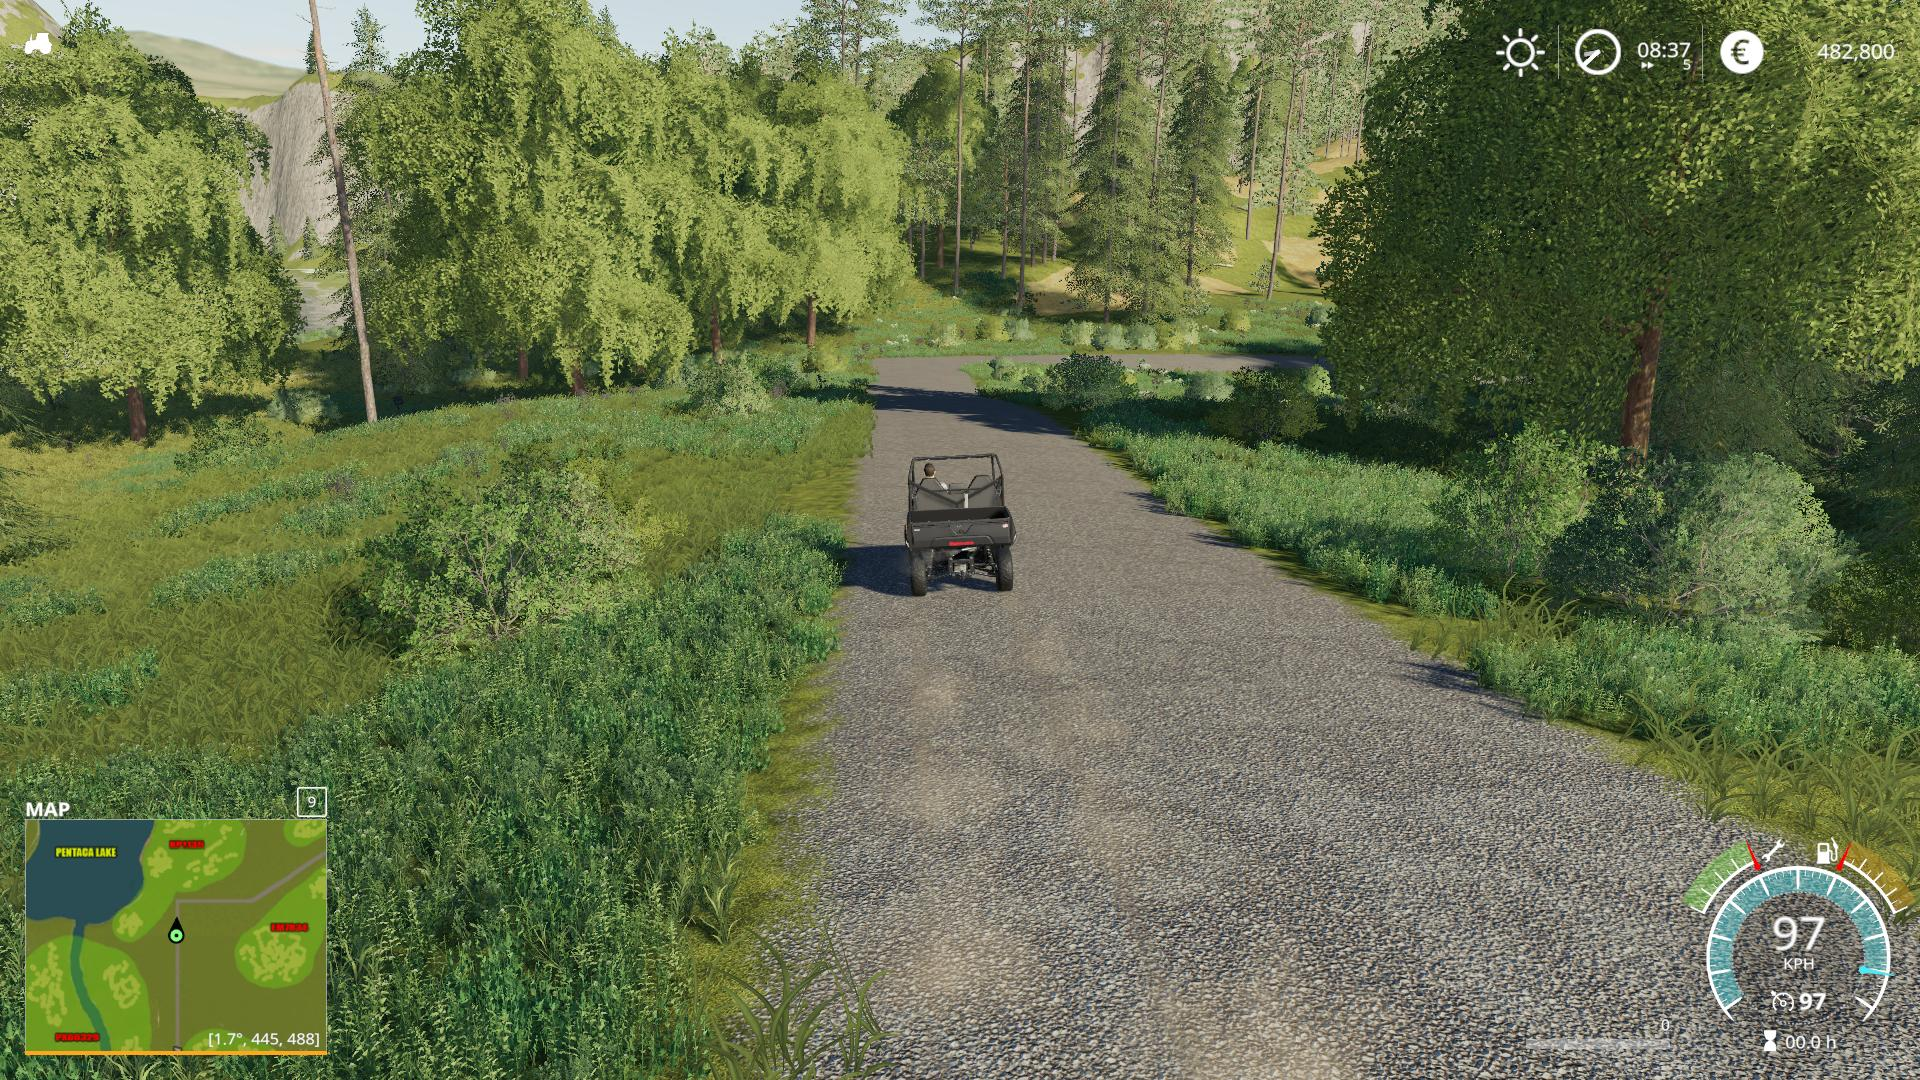 Grizzly Mountain Logging v1 0 0 Map FS 19 - Farming